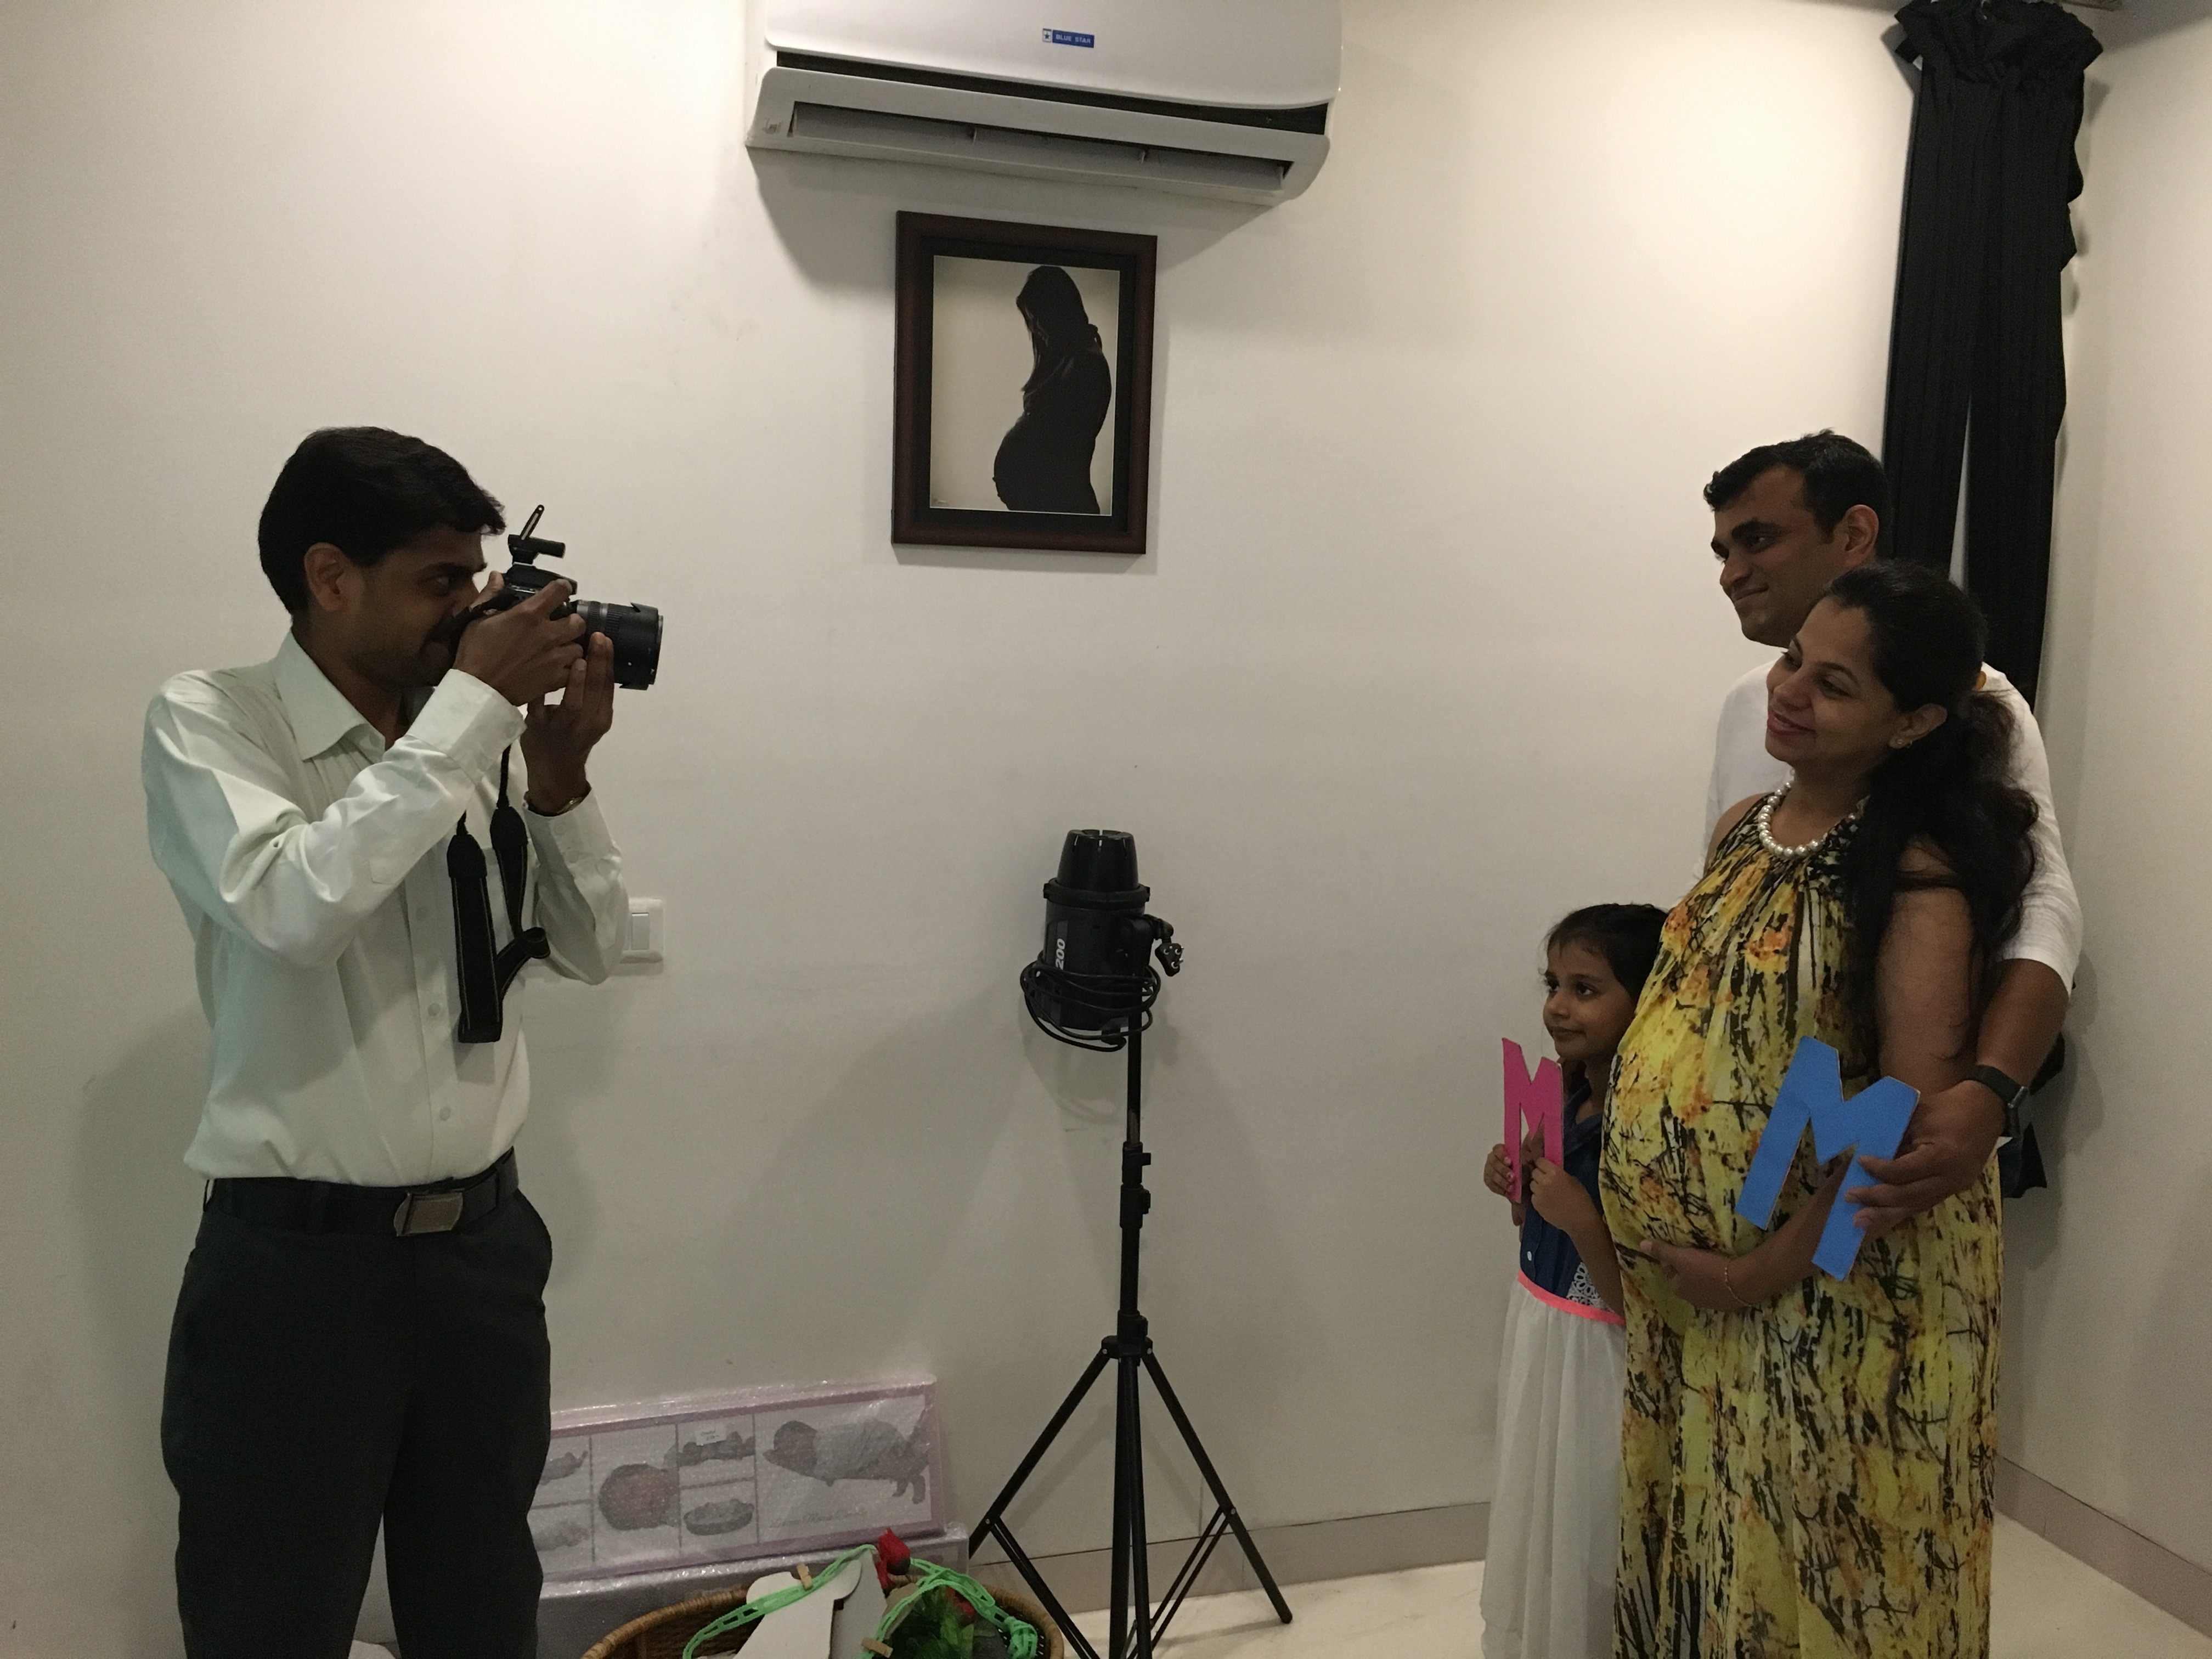 Cloudnine hospital's photographer Arvind Shinde at work. (Photo: Priyanka Vora)